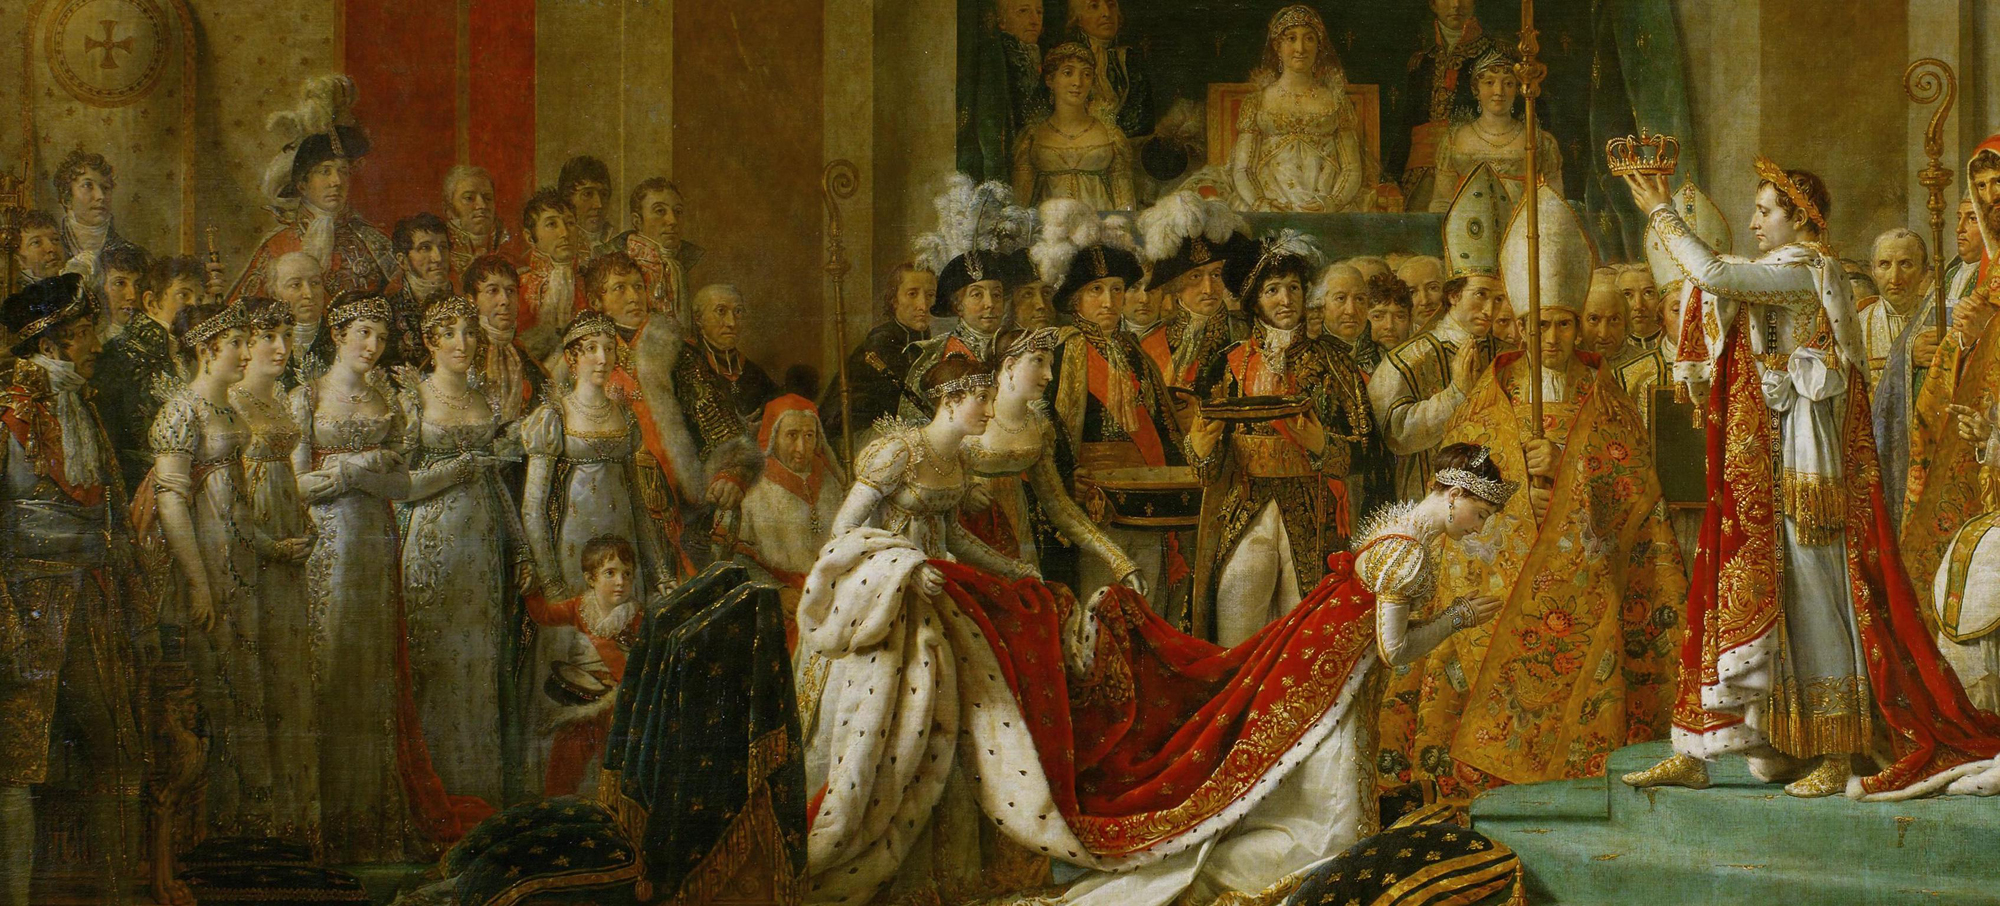 A detail of Napoleon crowning Josephine; note the lavish jewels of the Empress and the various ladies of the Court.